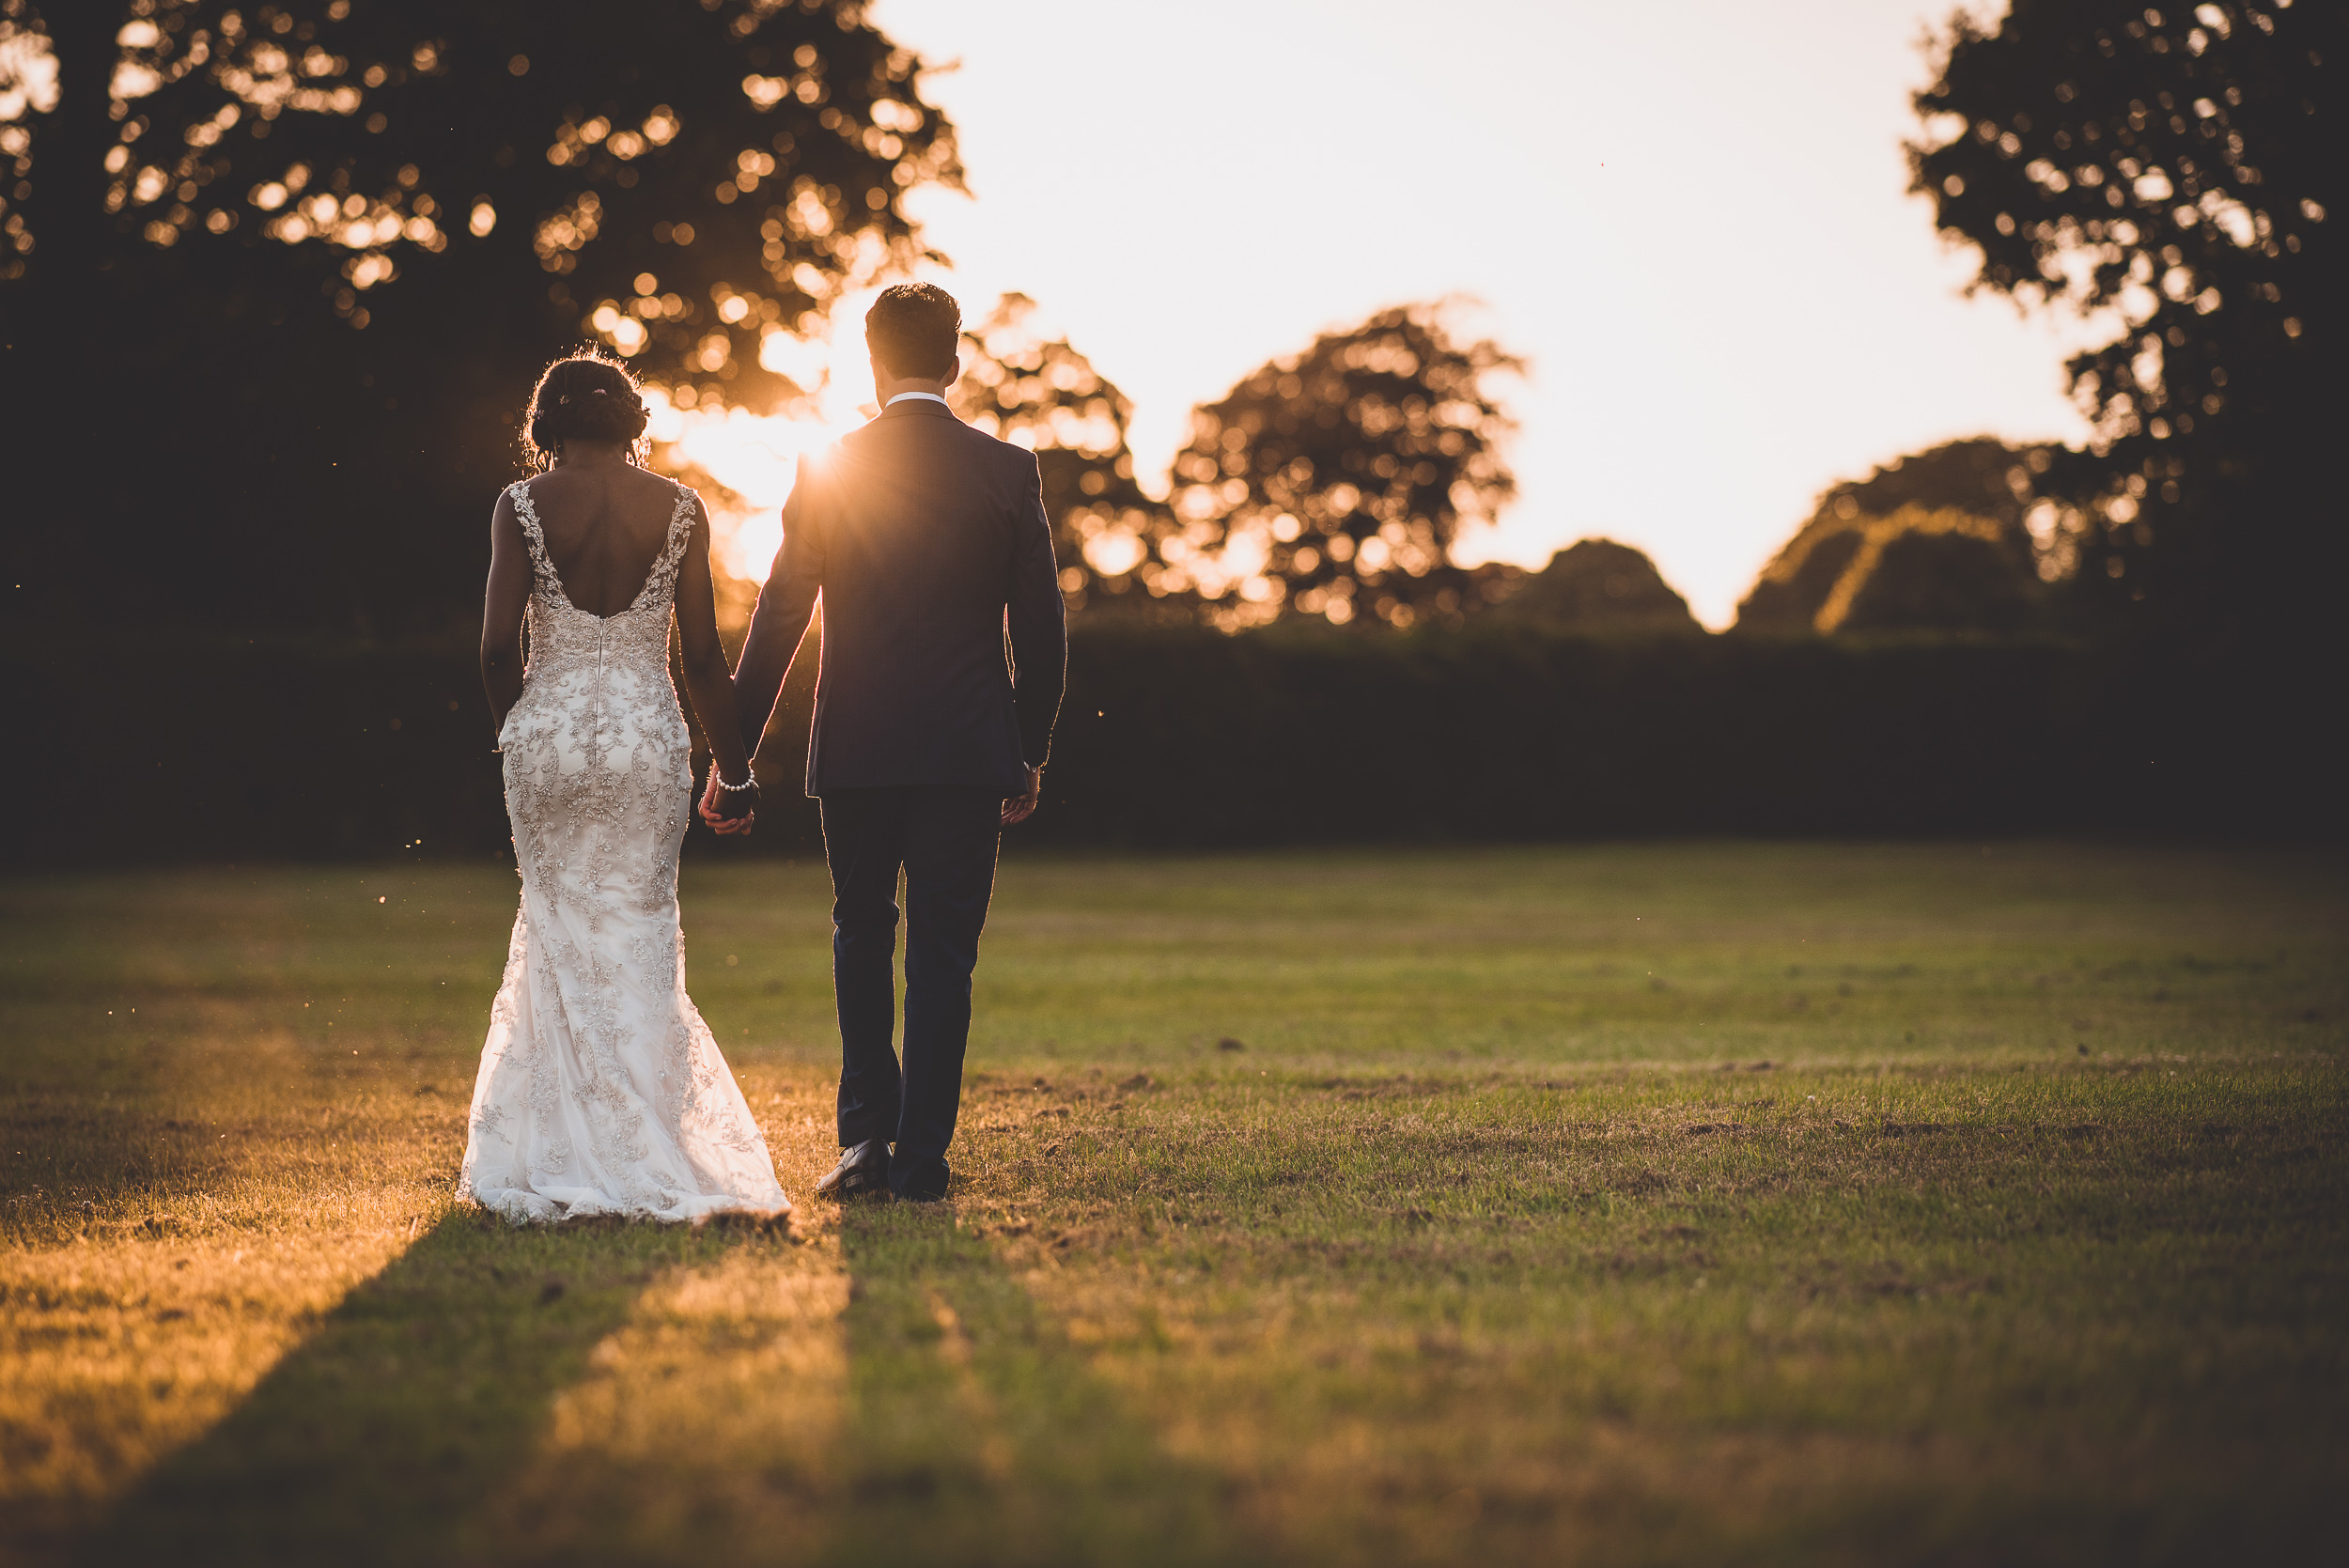 Lulworth Castle Wedding Photography | Amina & David Amina David ss 097